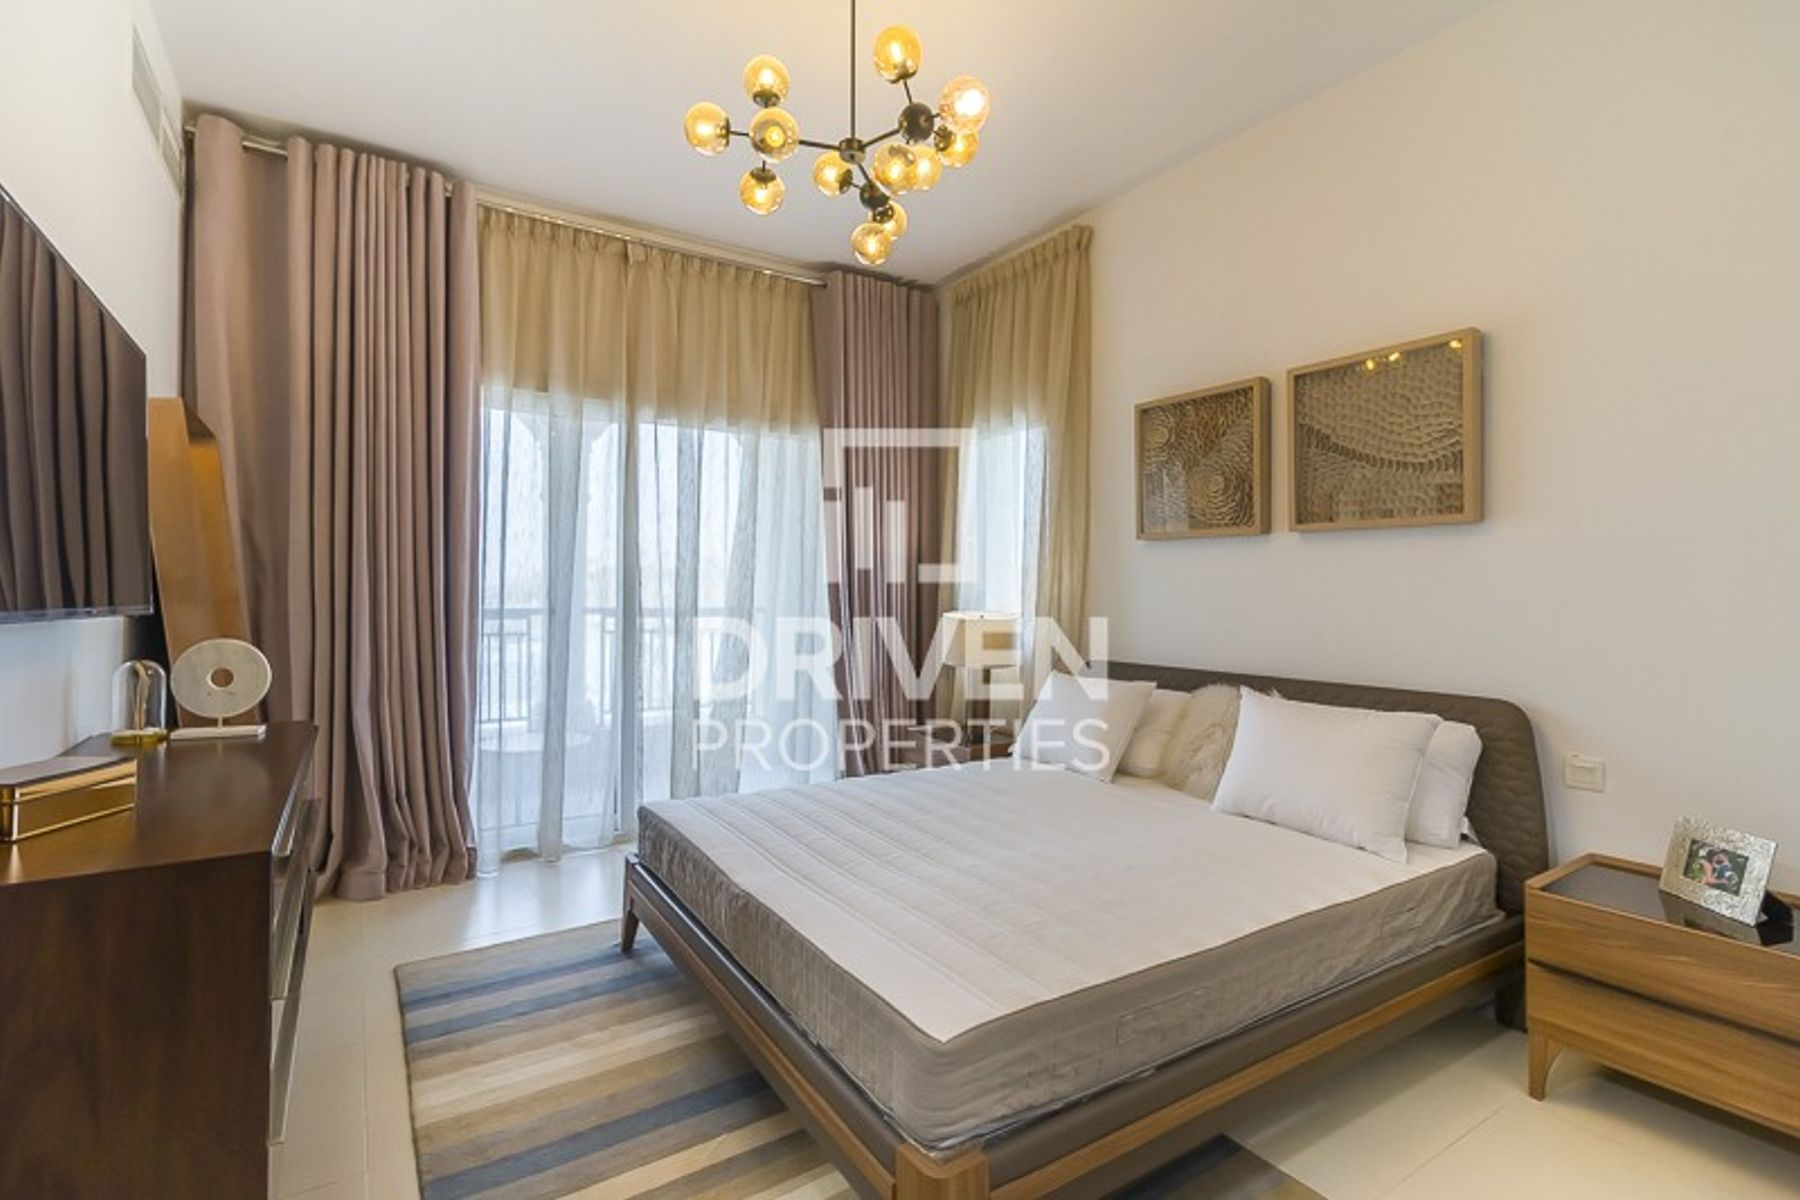 Type C 3 Bed Townhouse, Motivated Seller